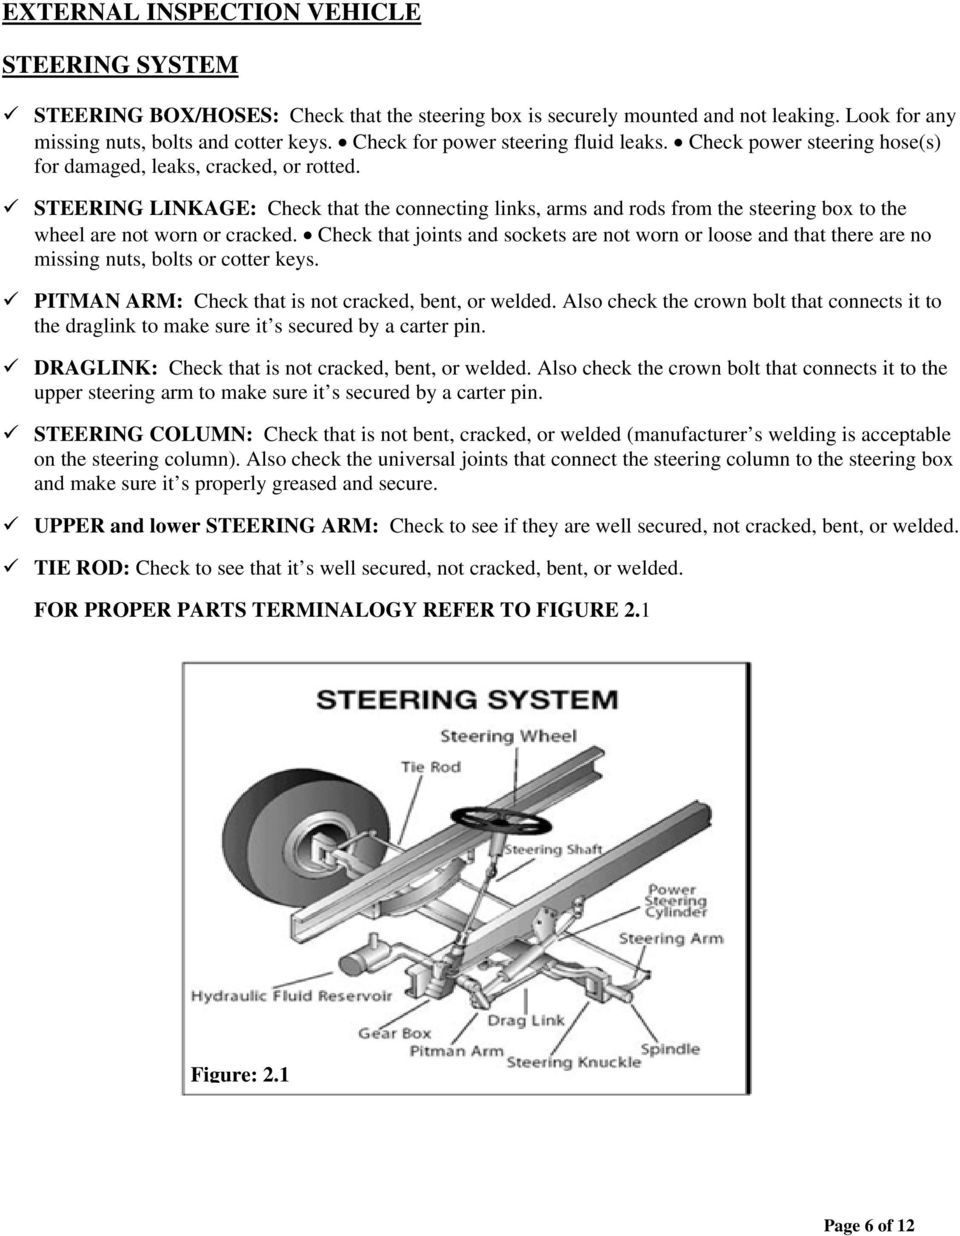 STEERING LINKAGE: Check that the connecting links, arms and rods from the steering box to the wheel are not worn or cracked.